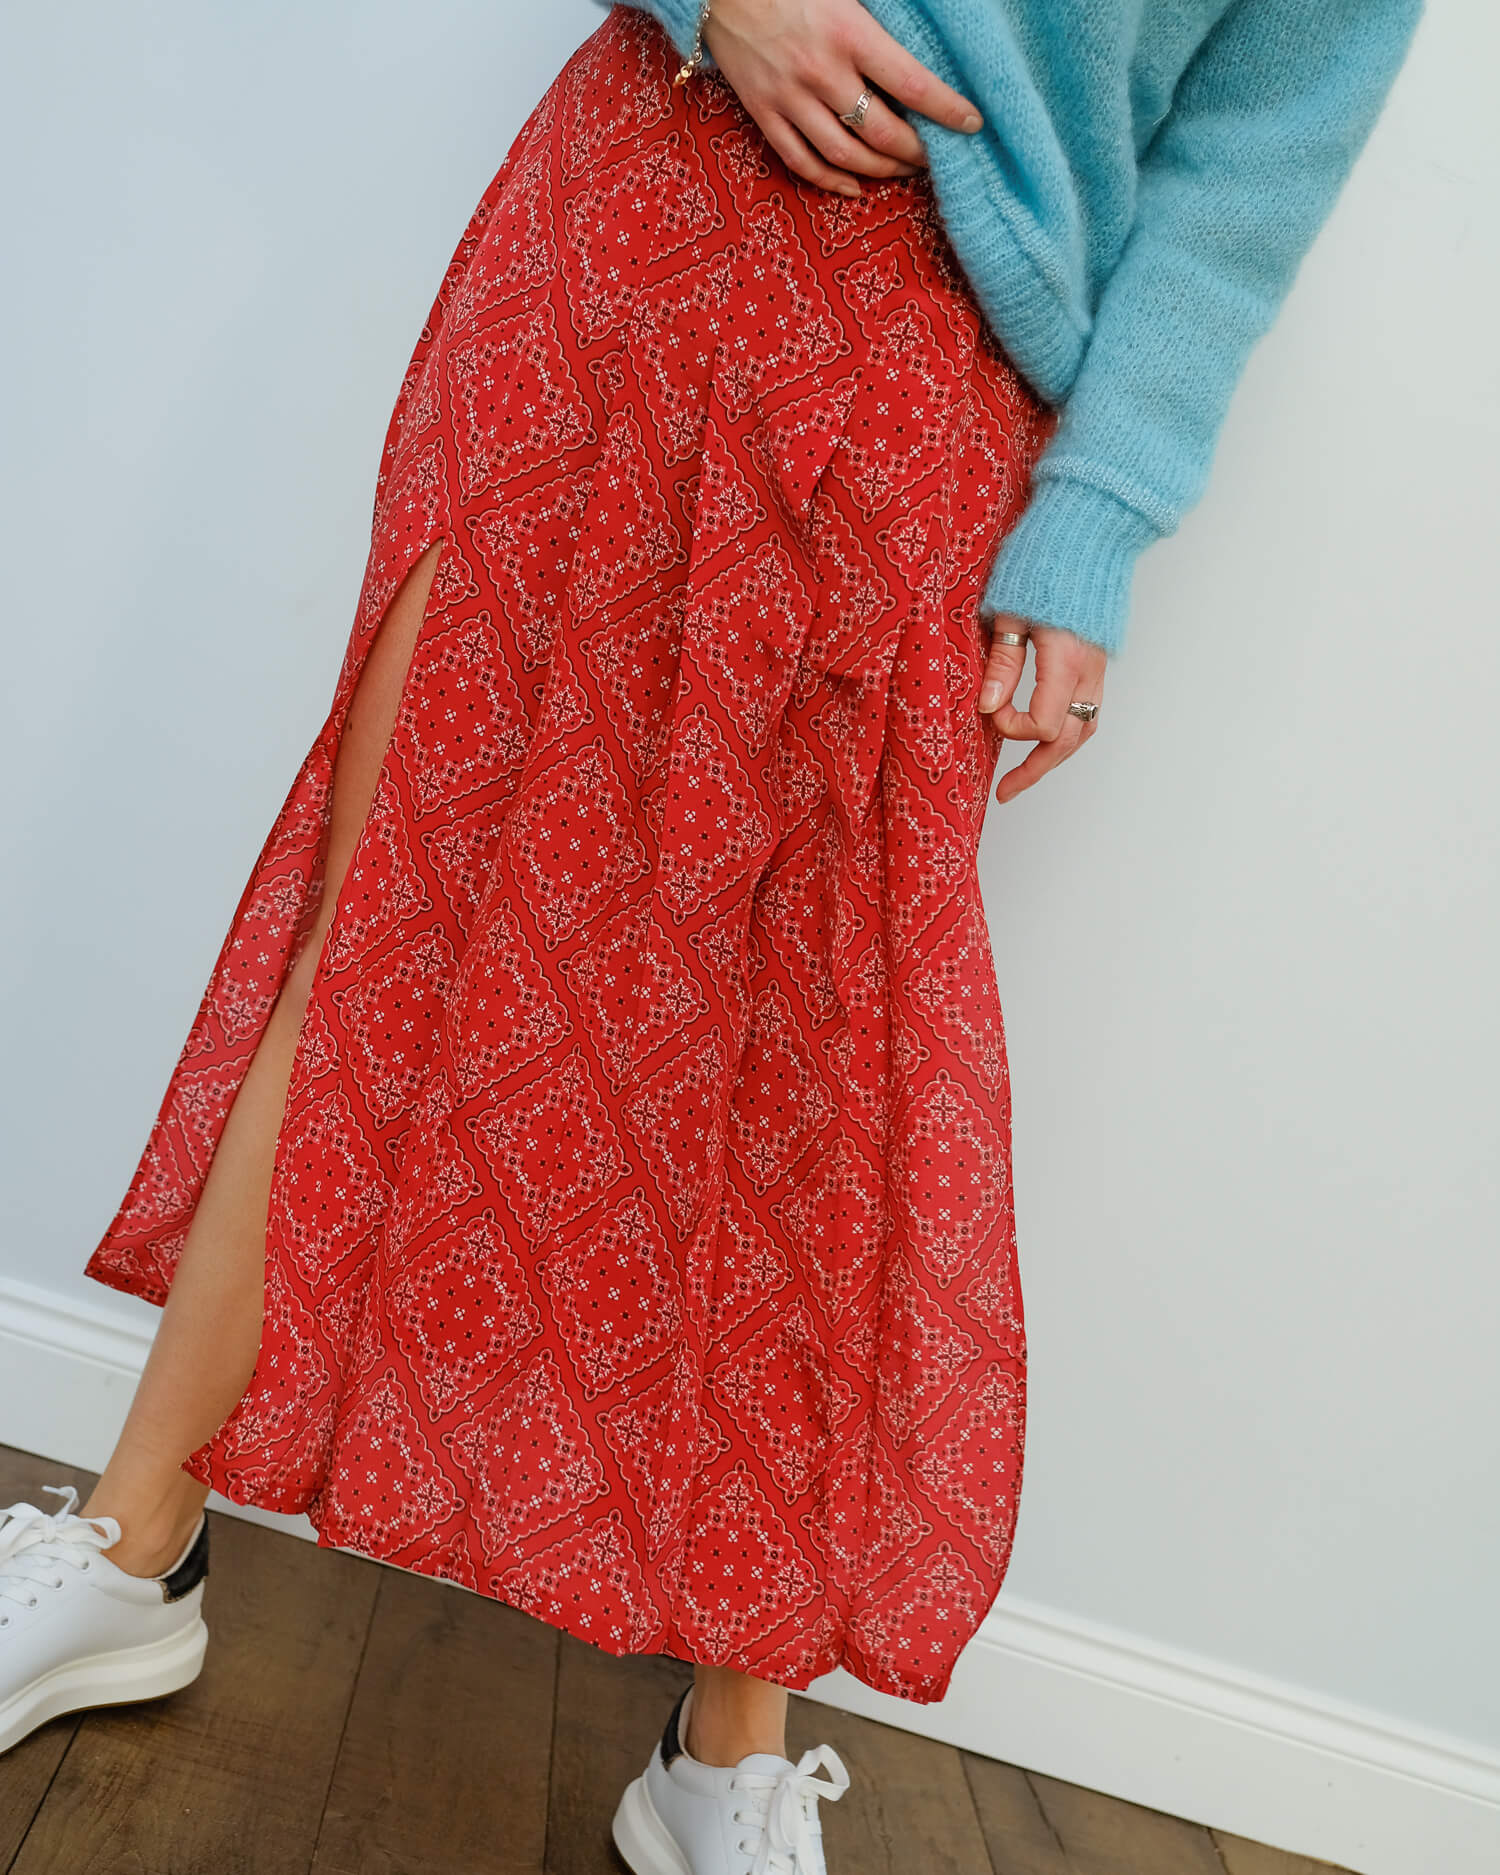 RIXO Georgia skirt in red square paisley